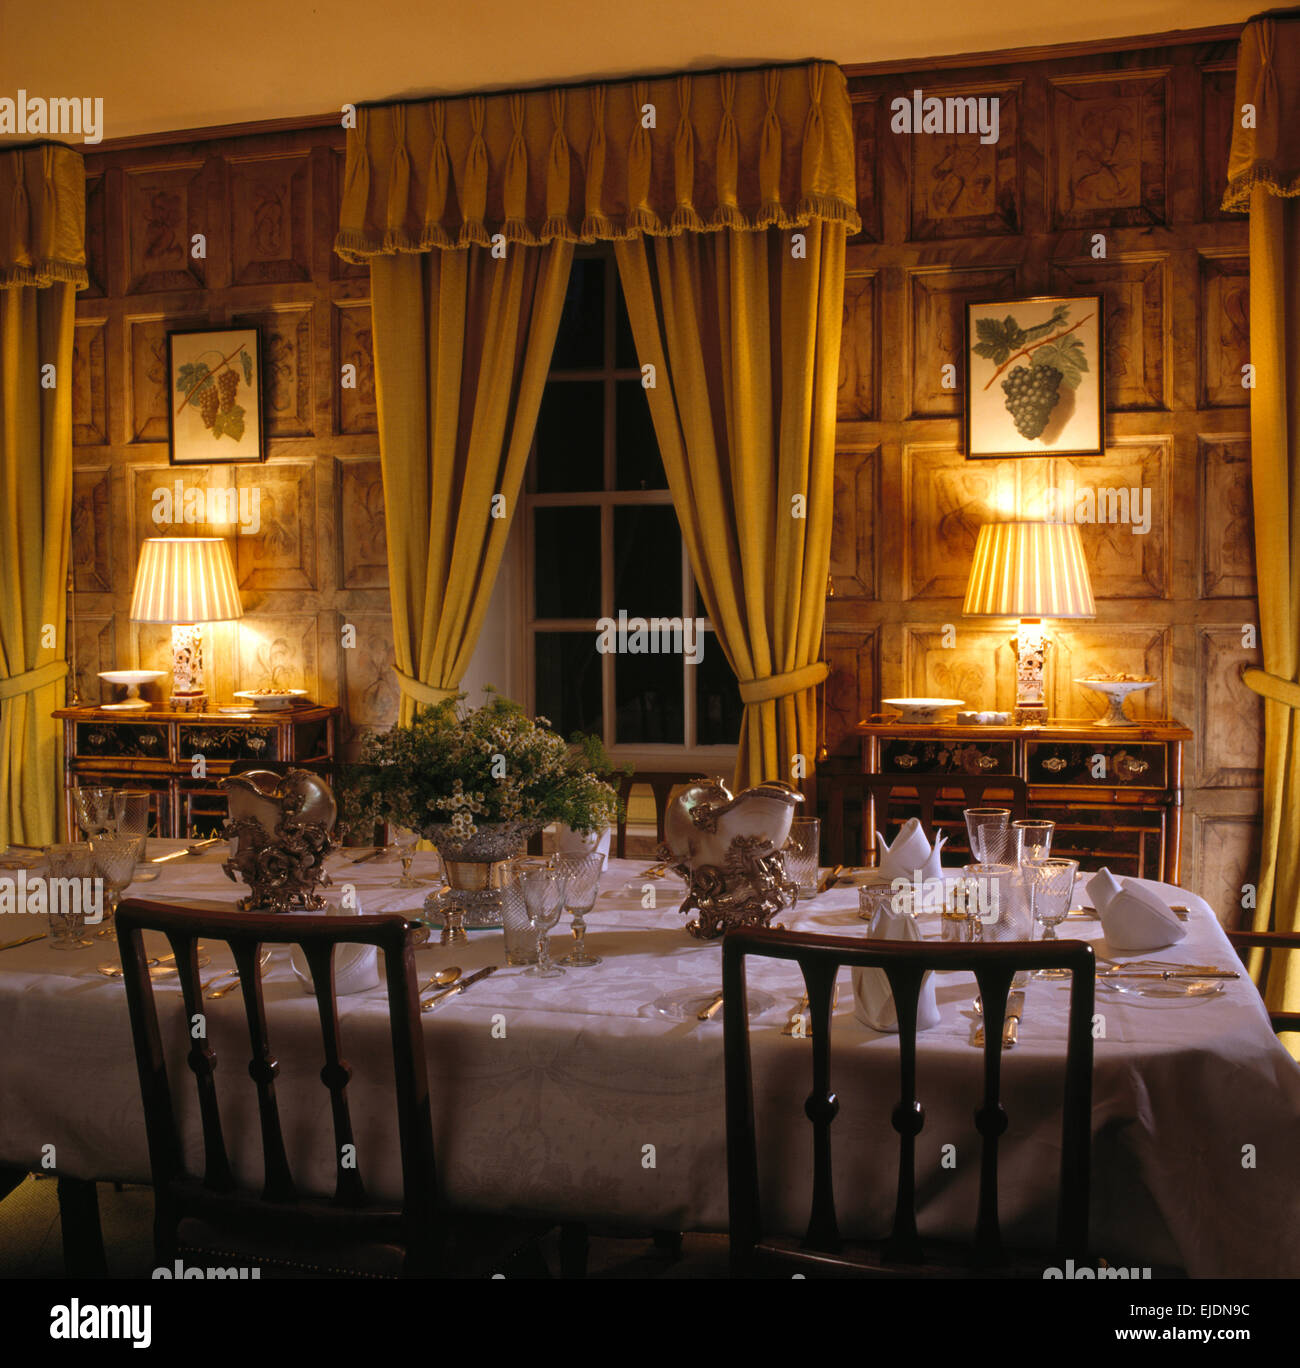 Country Dining Room Curtains: Yellow Curtains On Window In Paneled Country Dining Room